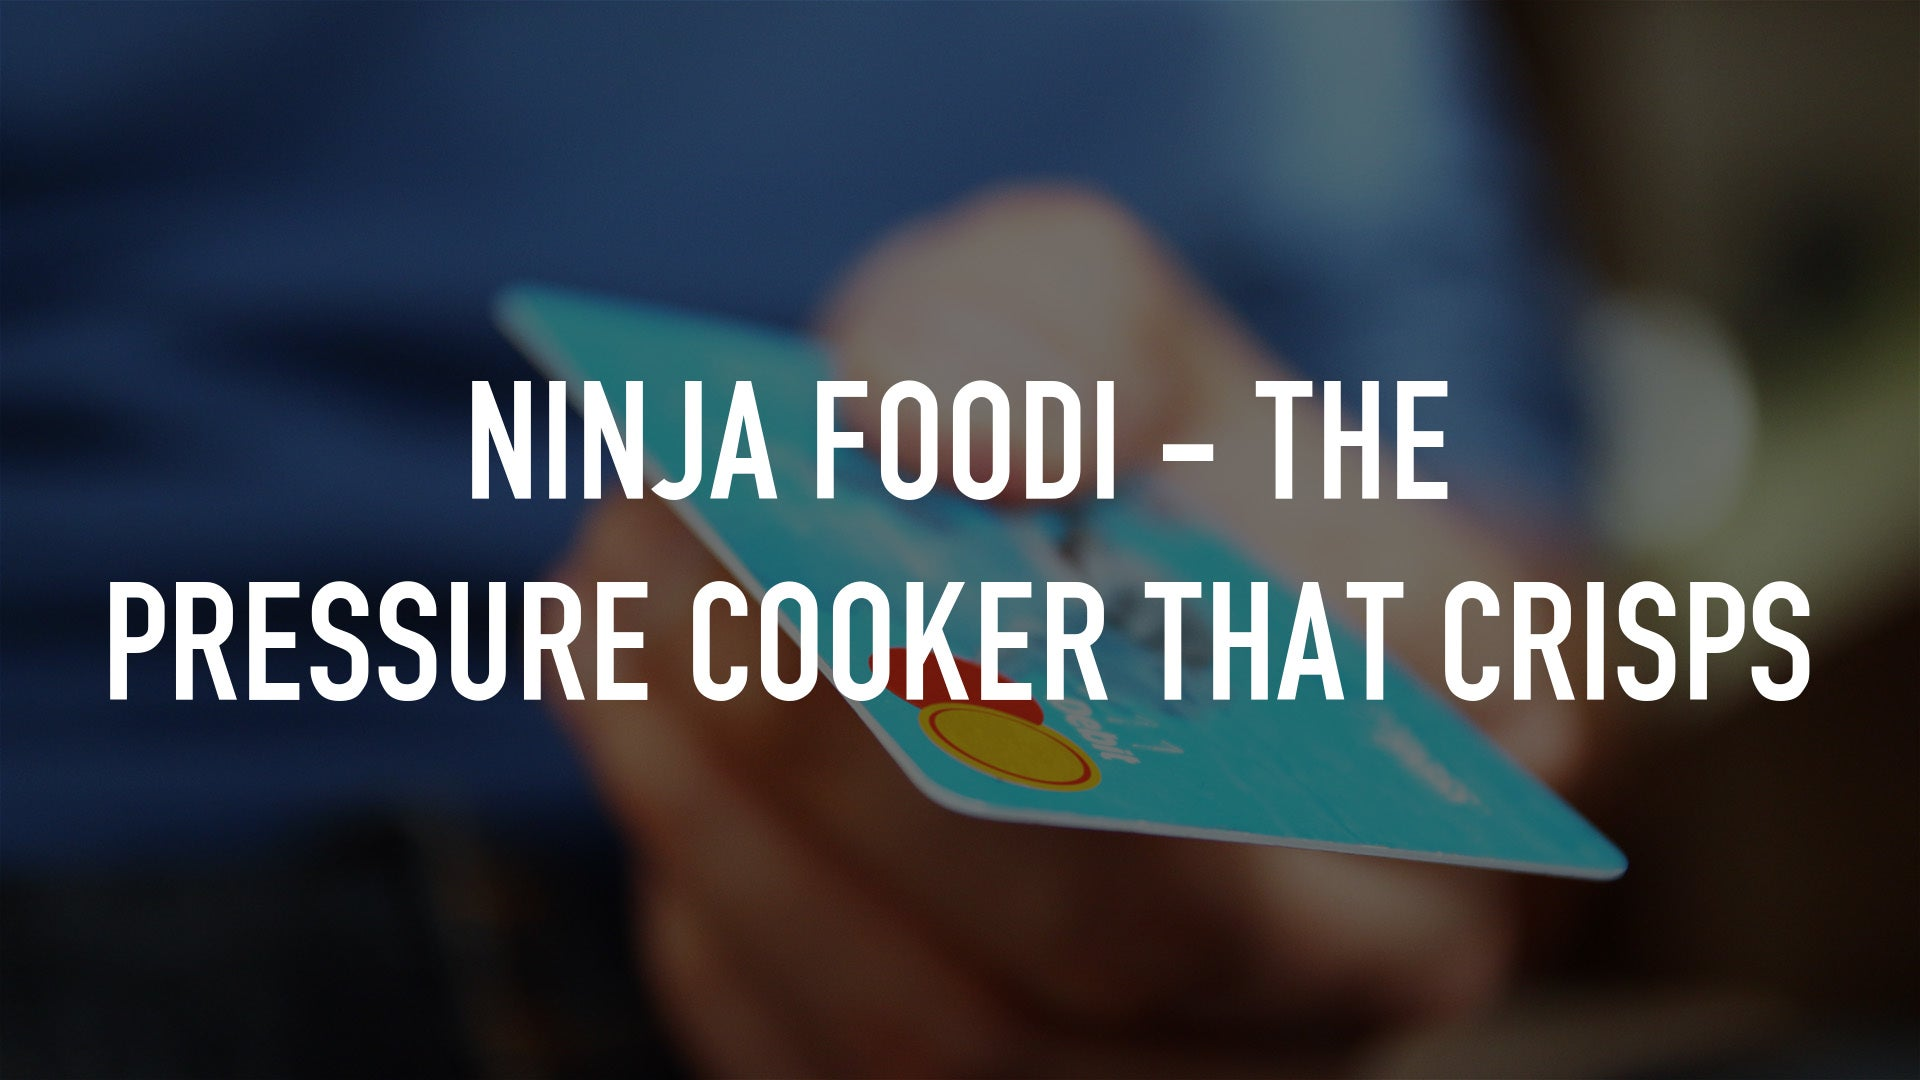 Ninja Foodi - The Pressure Cooker that Crisps